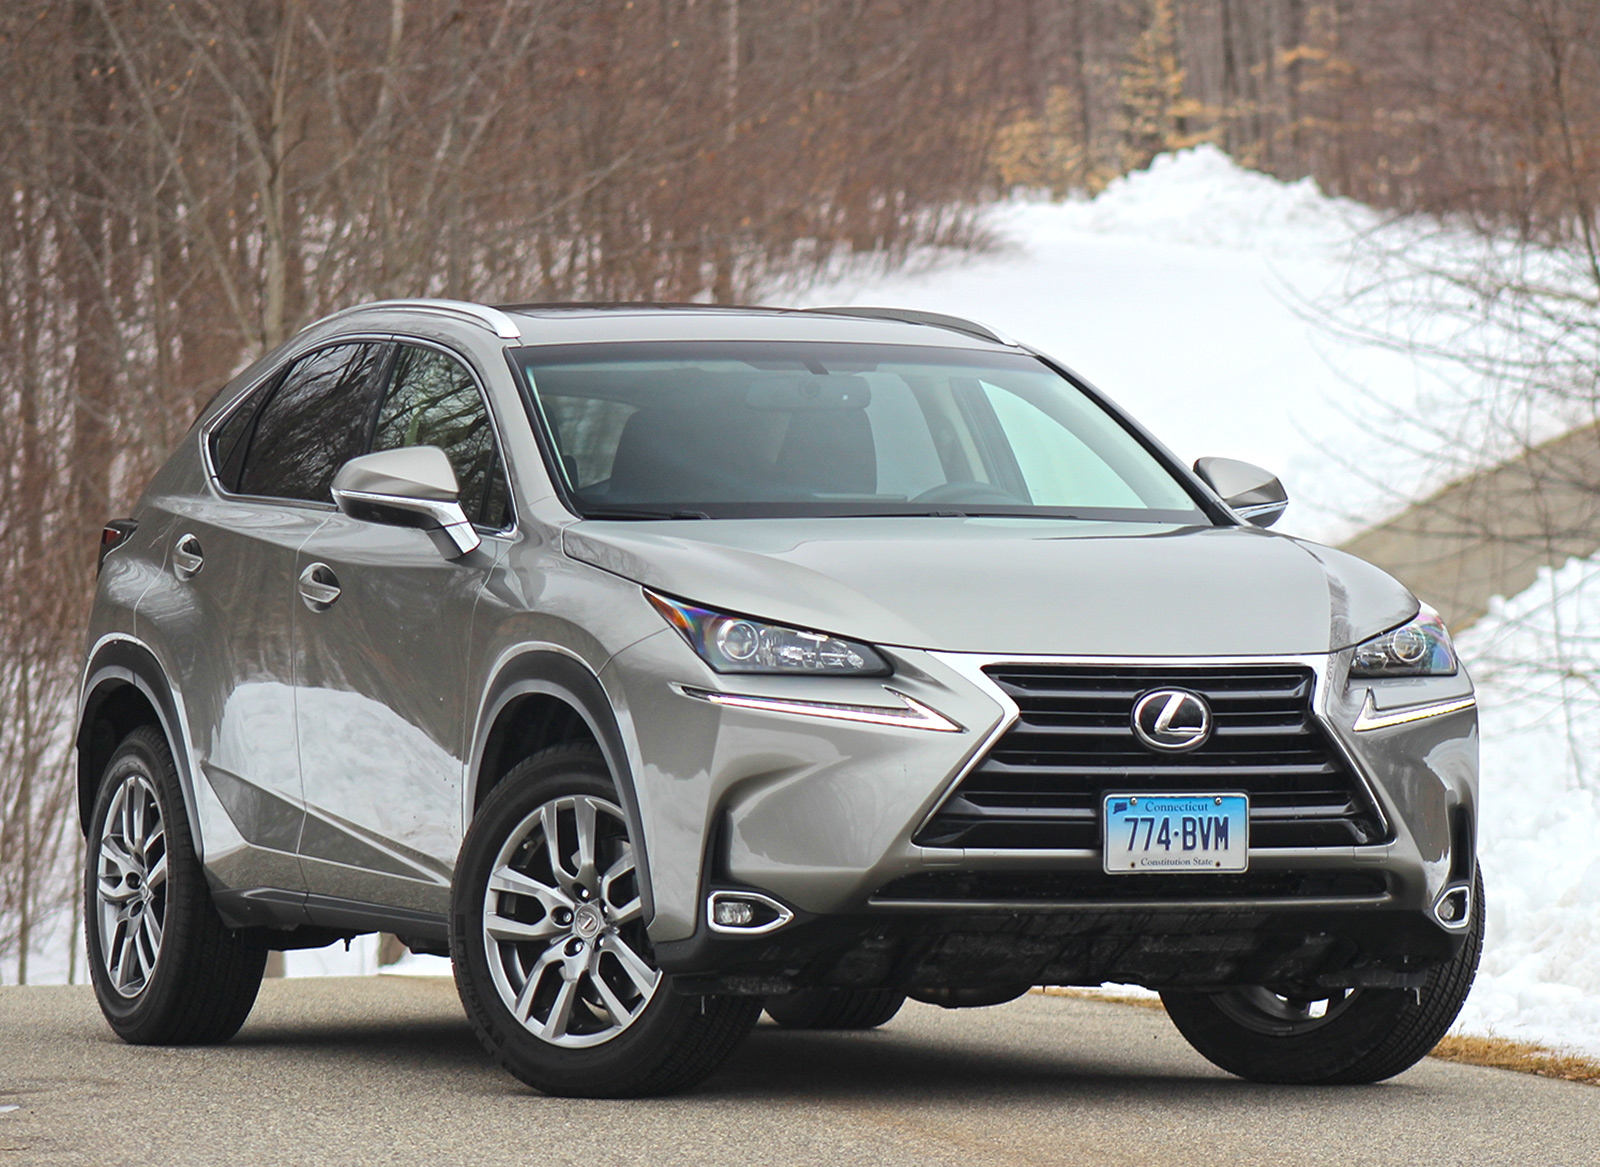 Edgy 2017 Lexus Nx 200t Proves Agile And Downright Youthful Consumer Reports